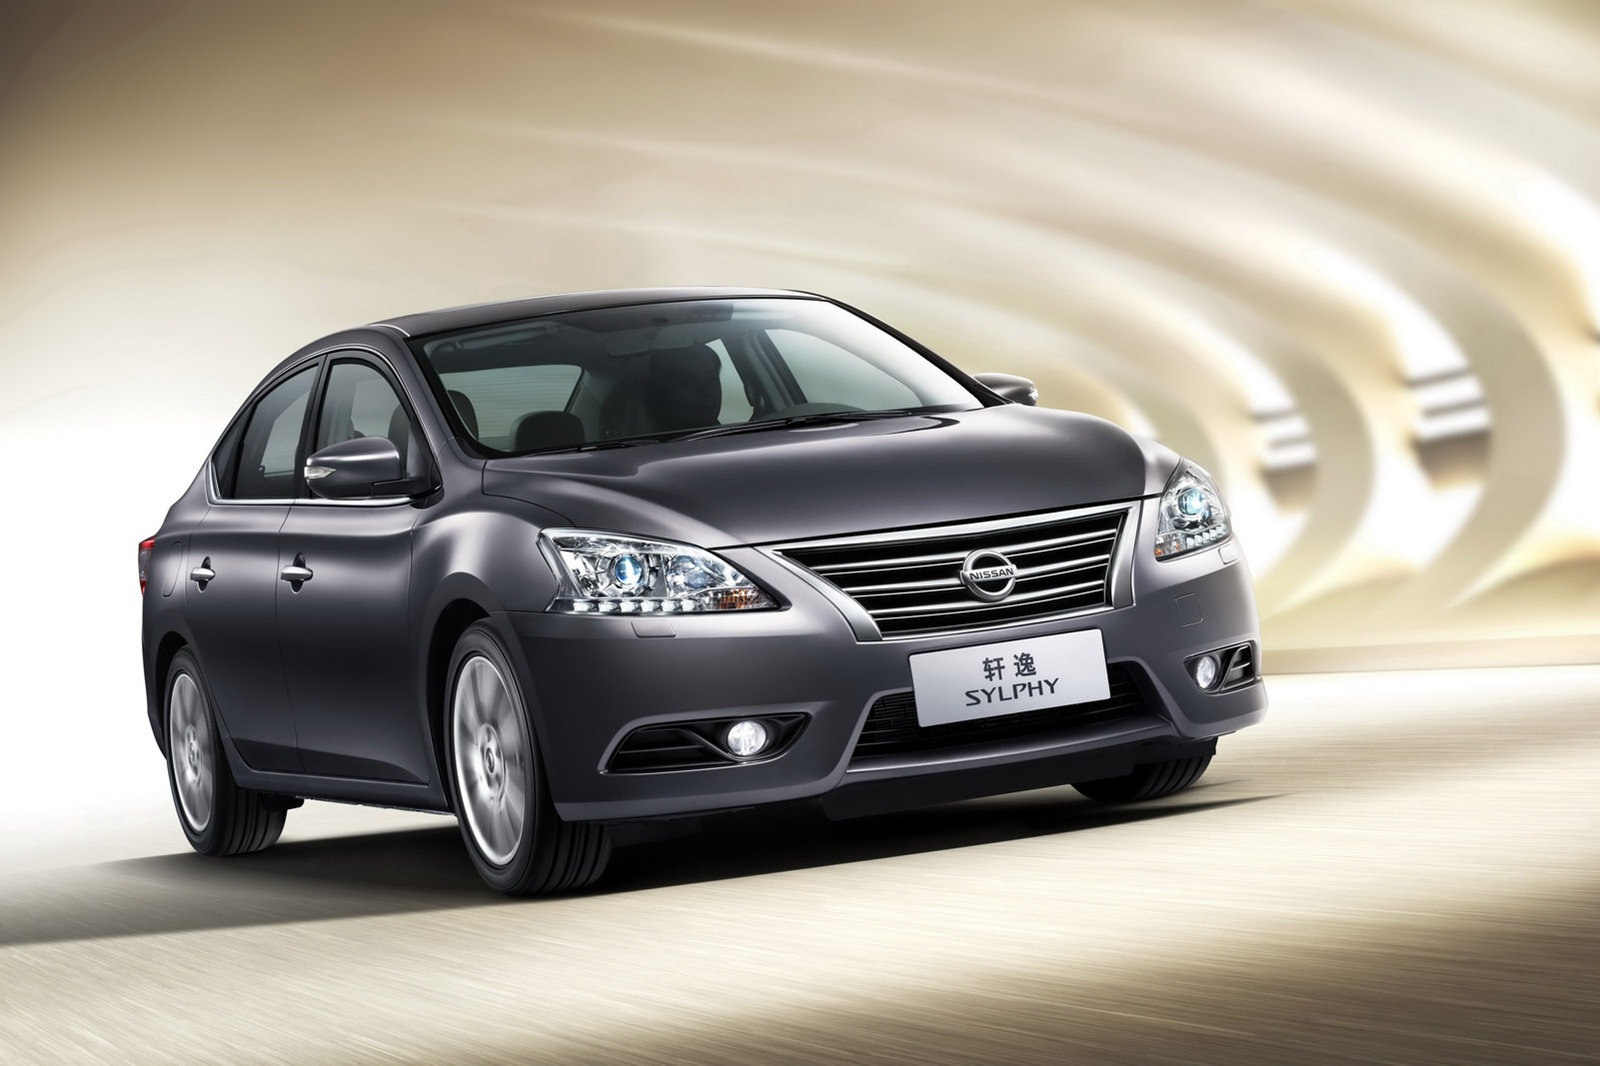 2013 Nissan Sentra Cars Sketches Where Is The Inertia Switch On 2015